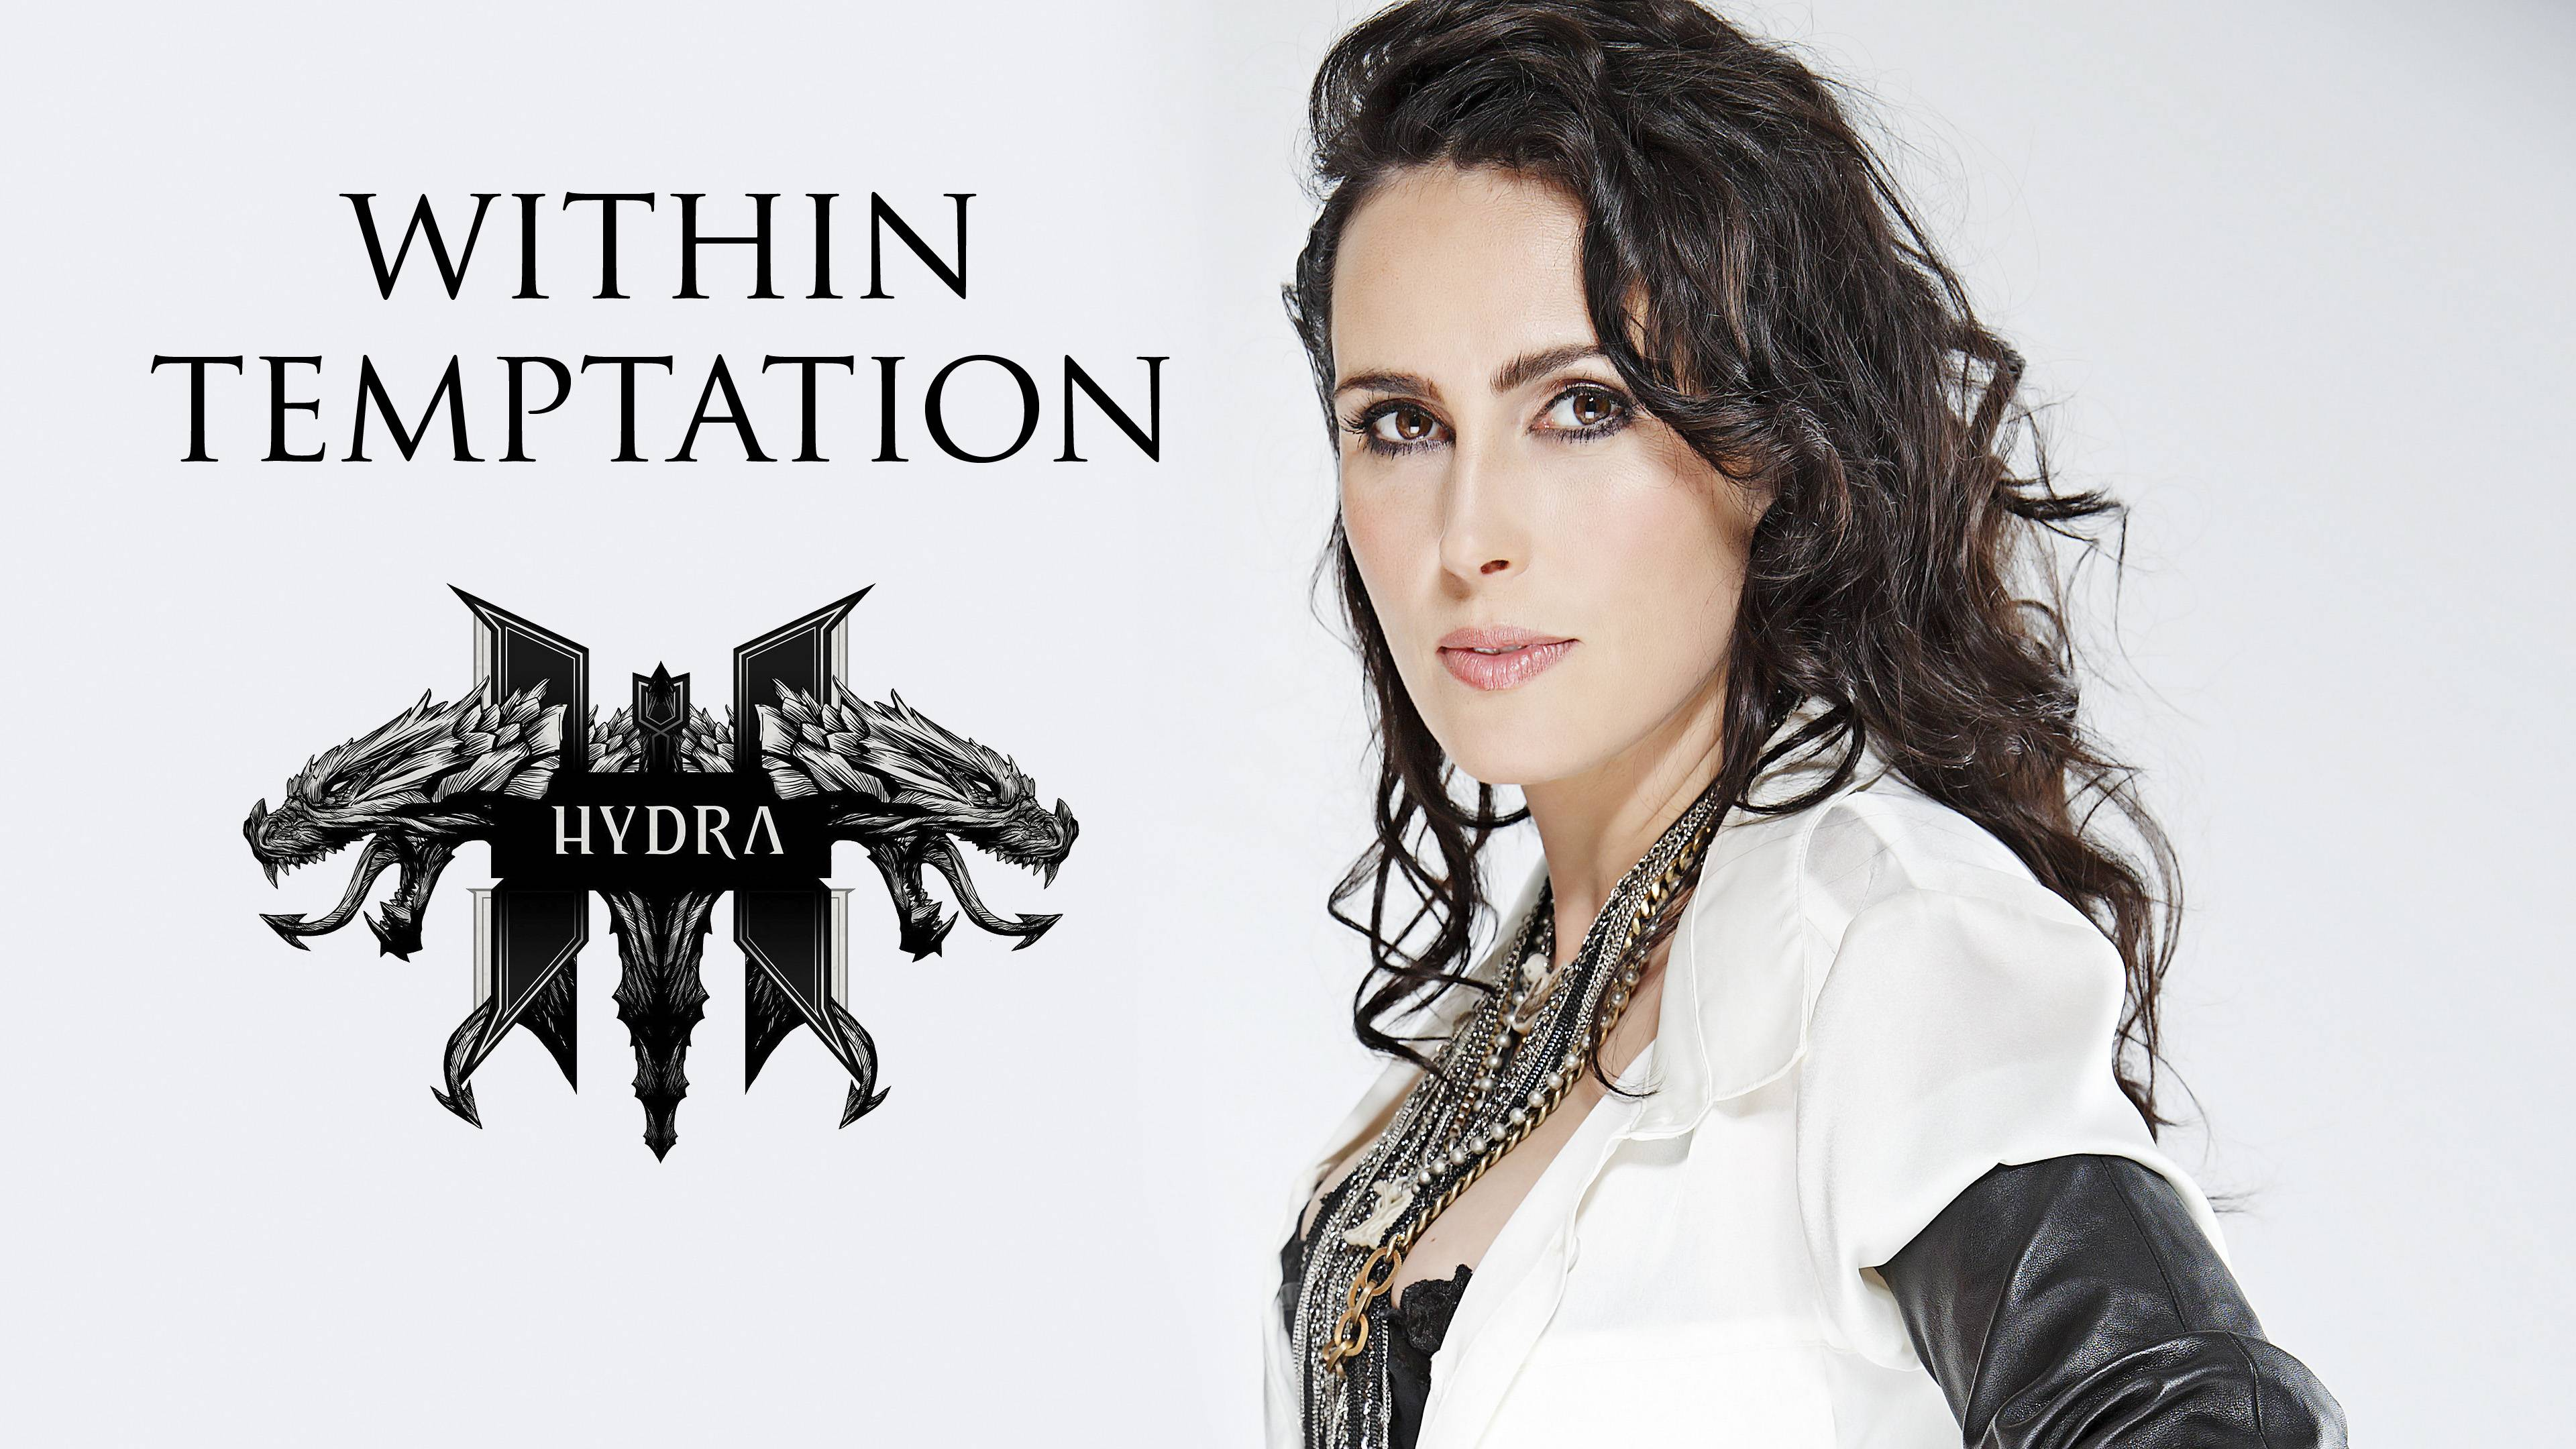 DeviantArt: More Like Within Temptation